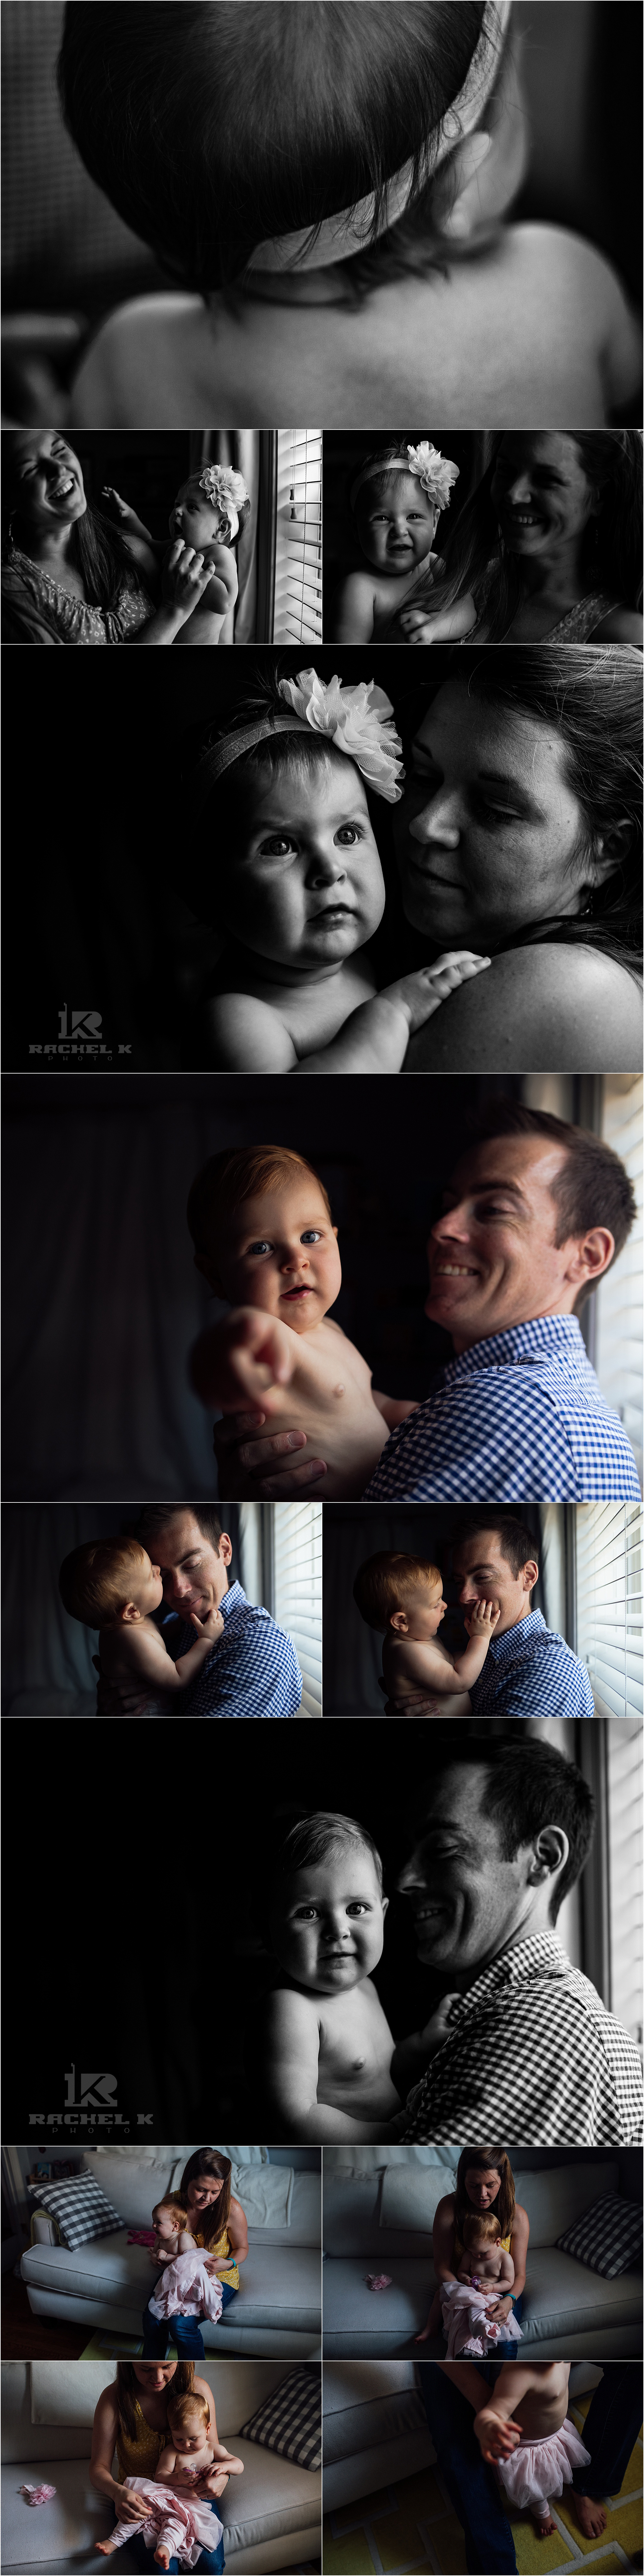 Fairfax Virginia family session with one year old girl by Rachel K Photo